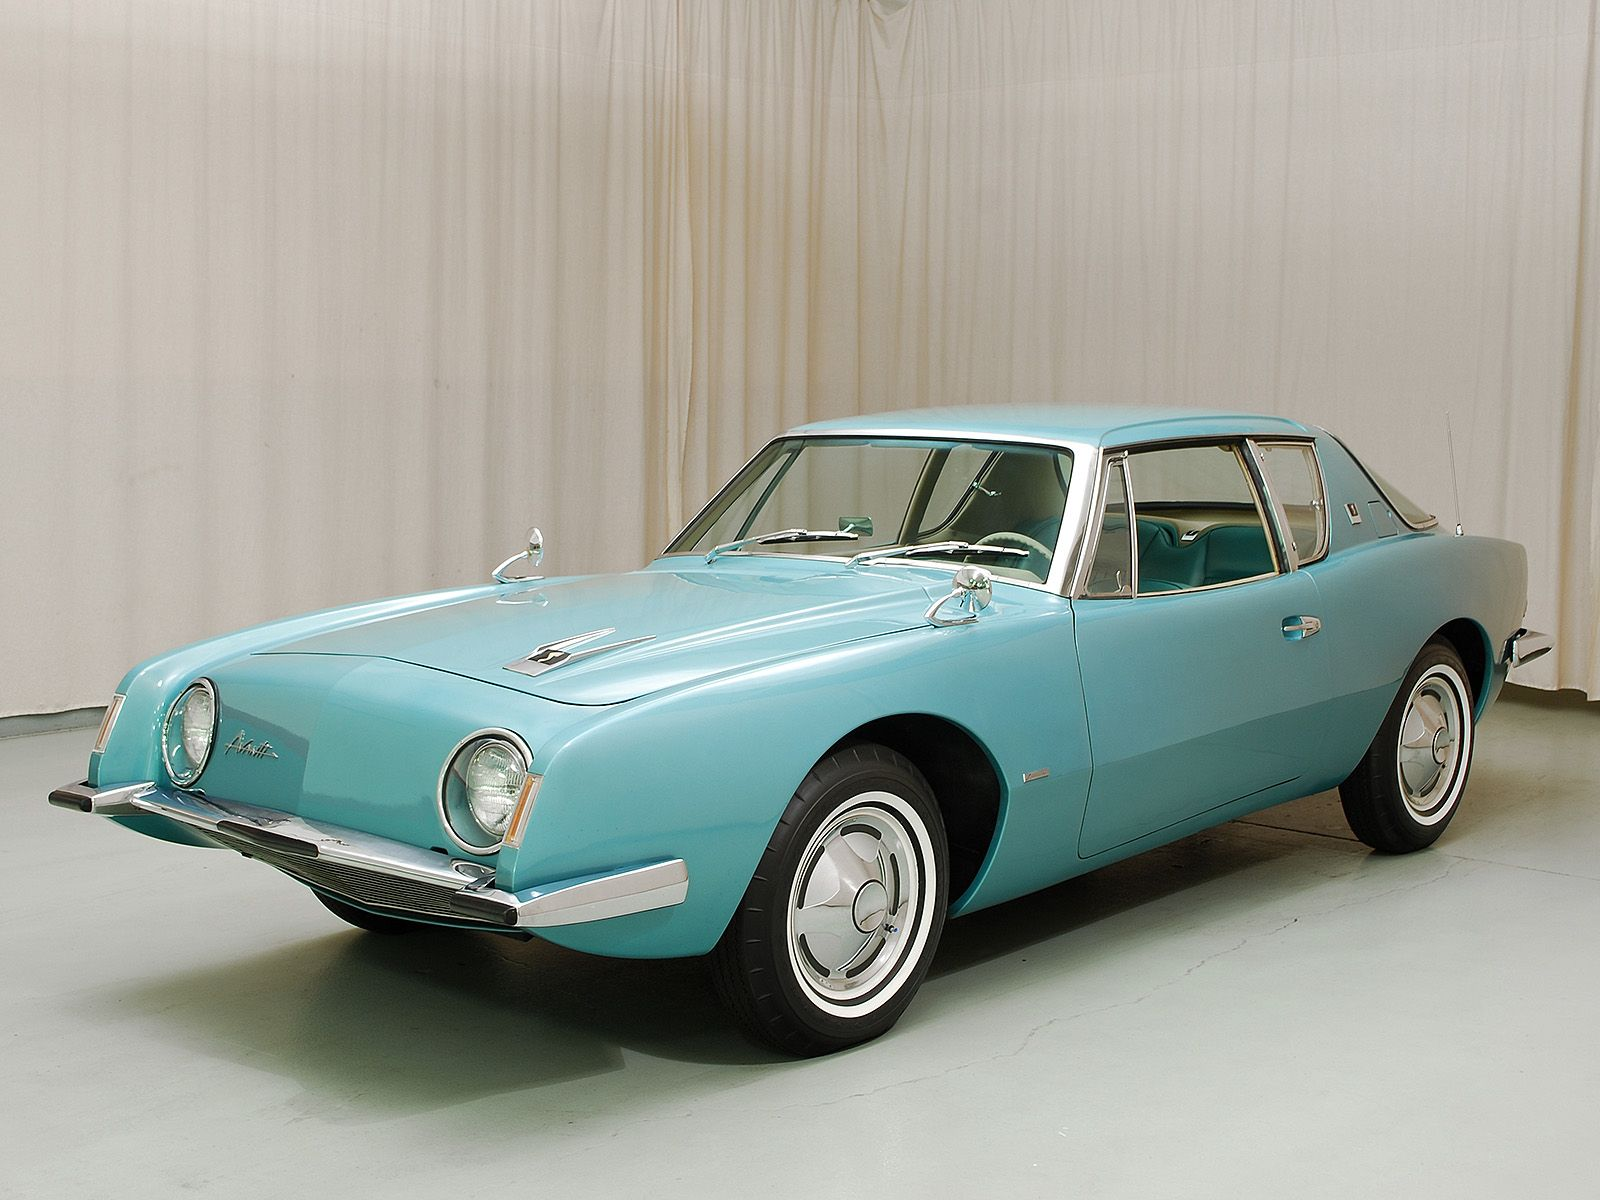 1963 studebaker avanti r2 unusual and rare these cars stand out on the road